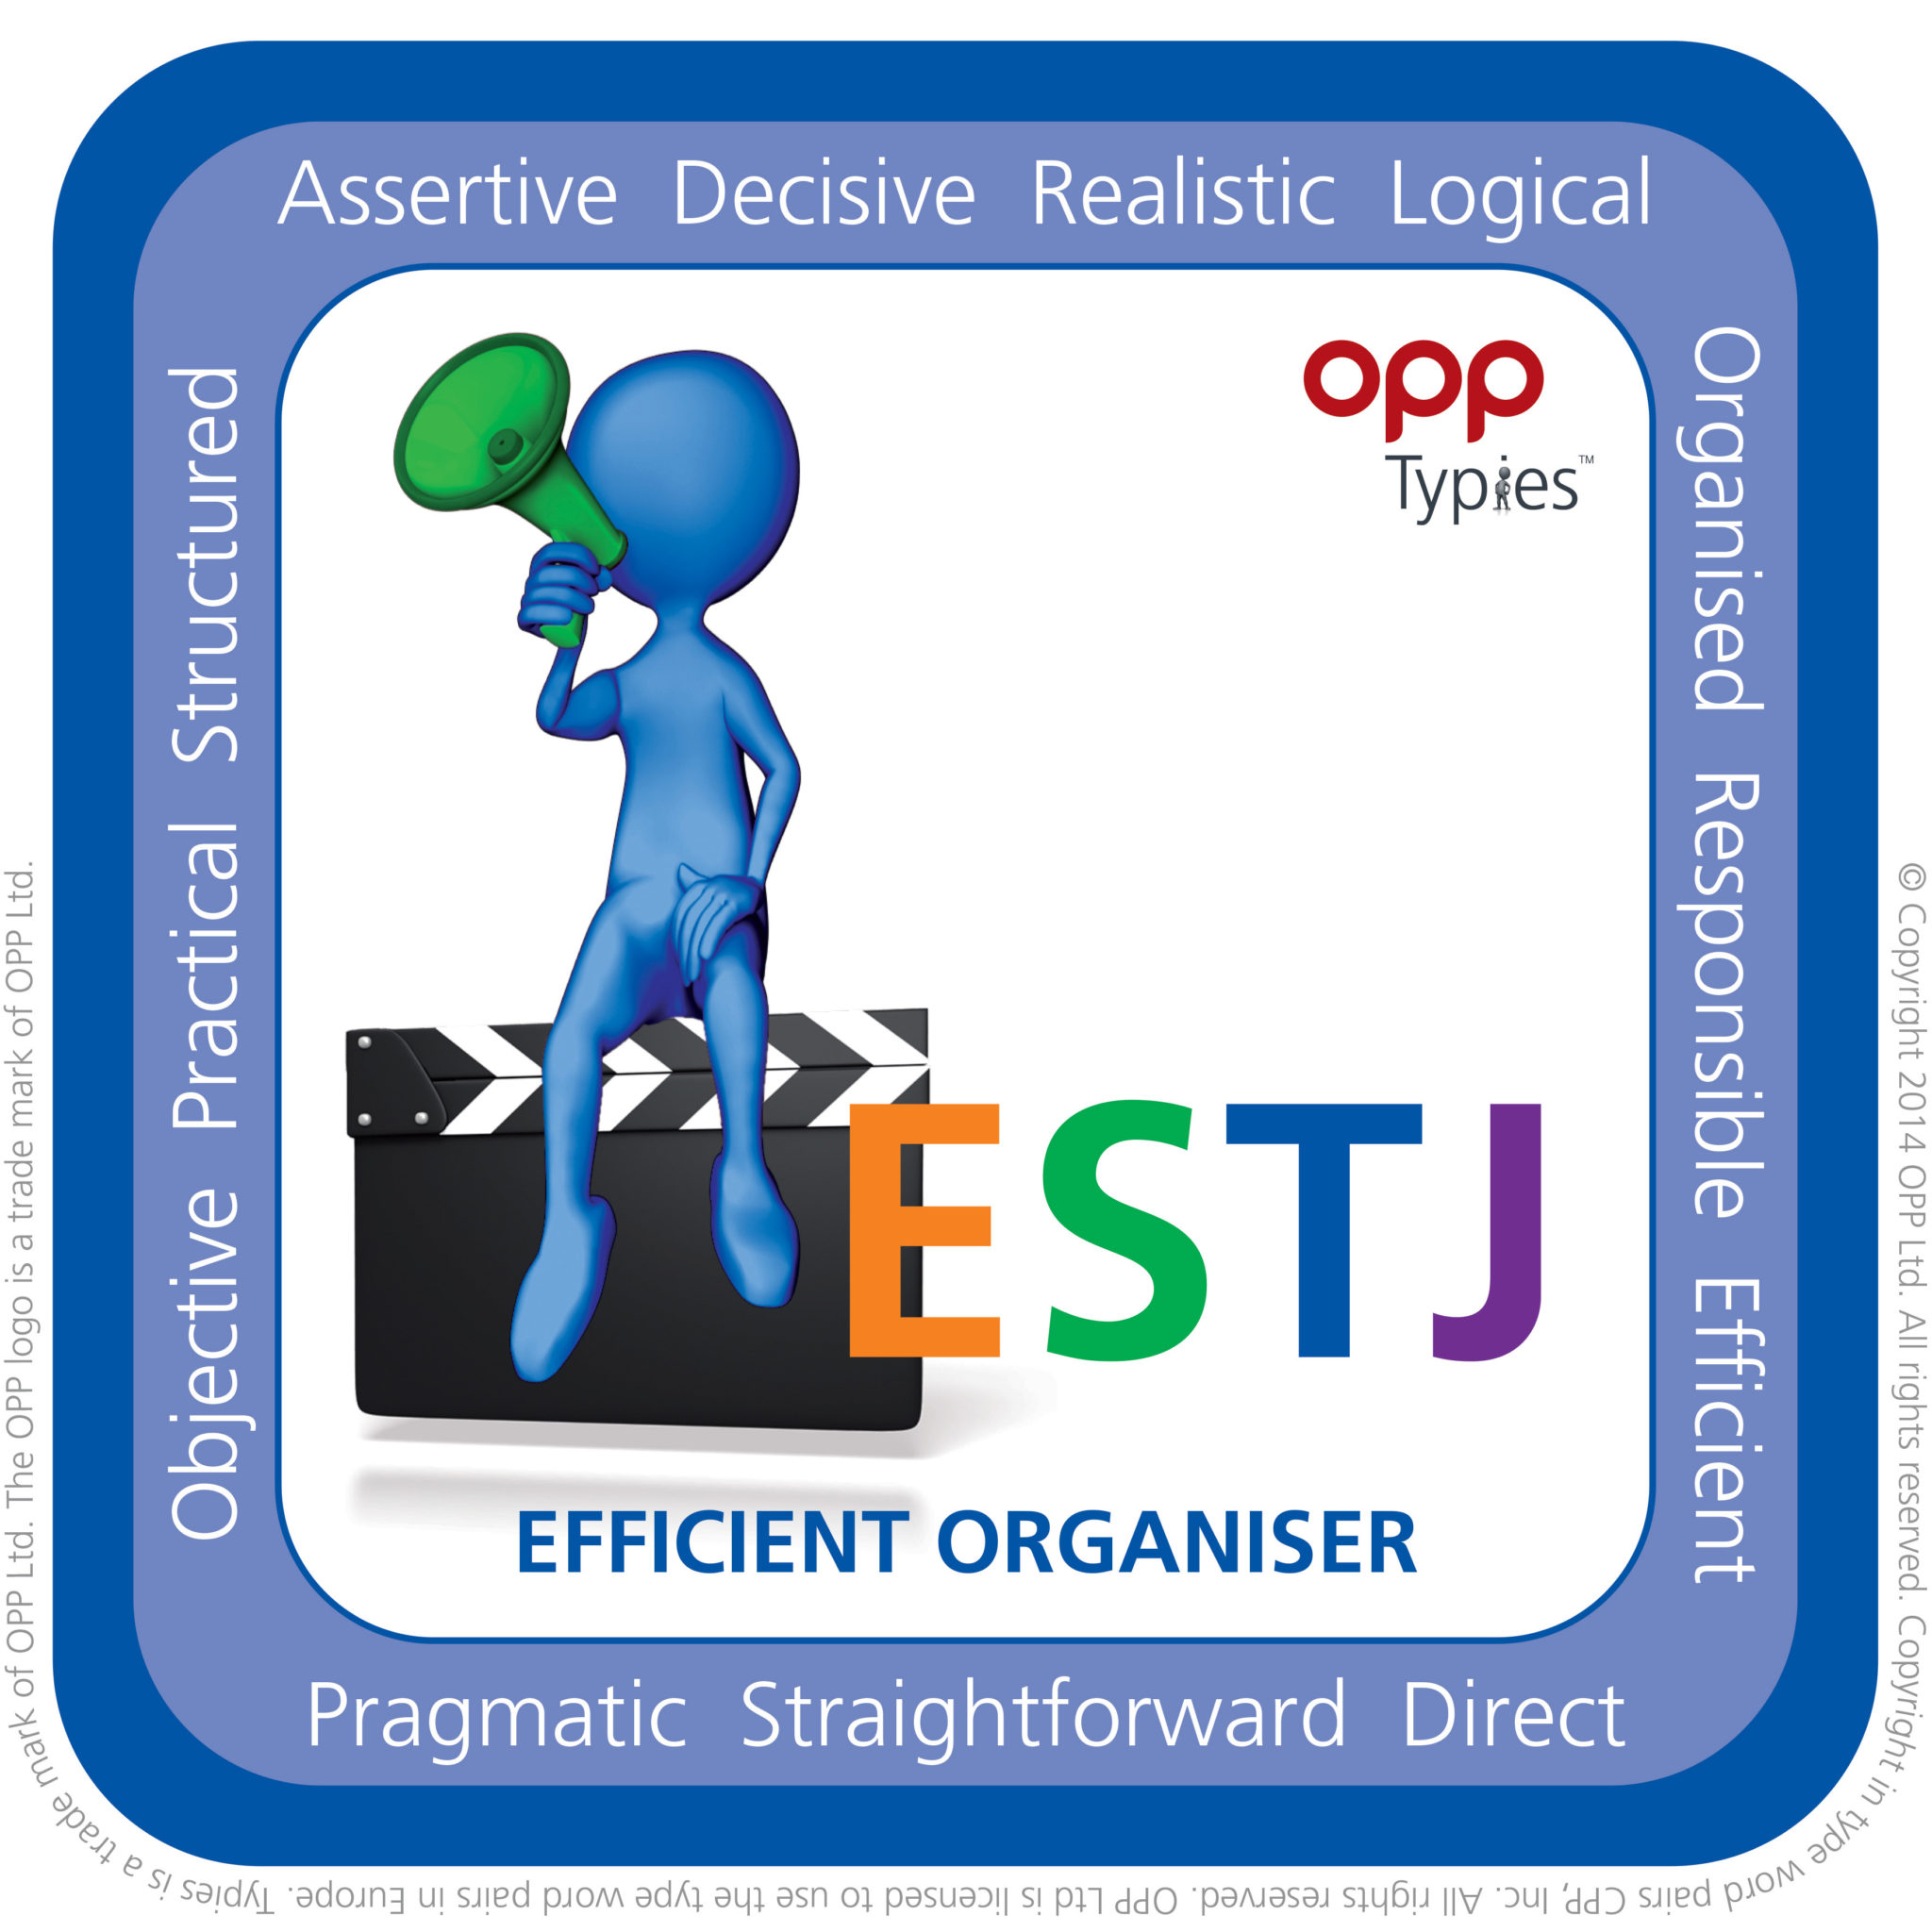 ESTJ Typie, willerby hill hr, hr advice hull, mbti east yorkshire, mbti hull